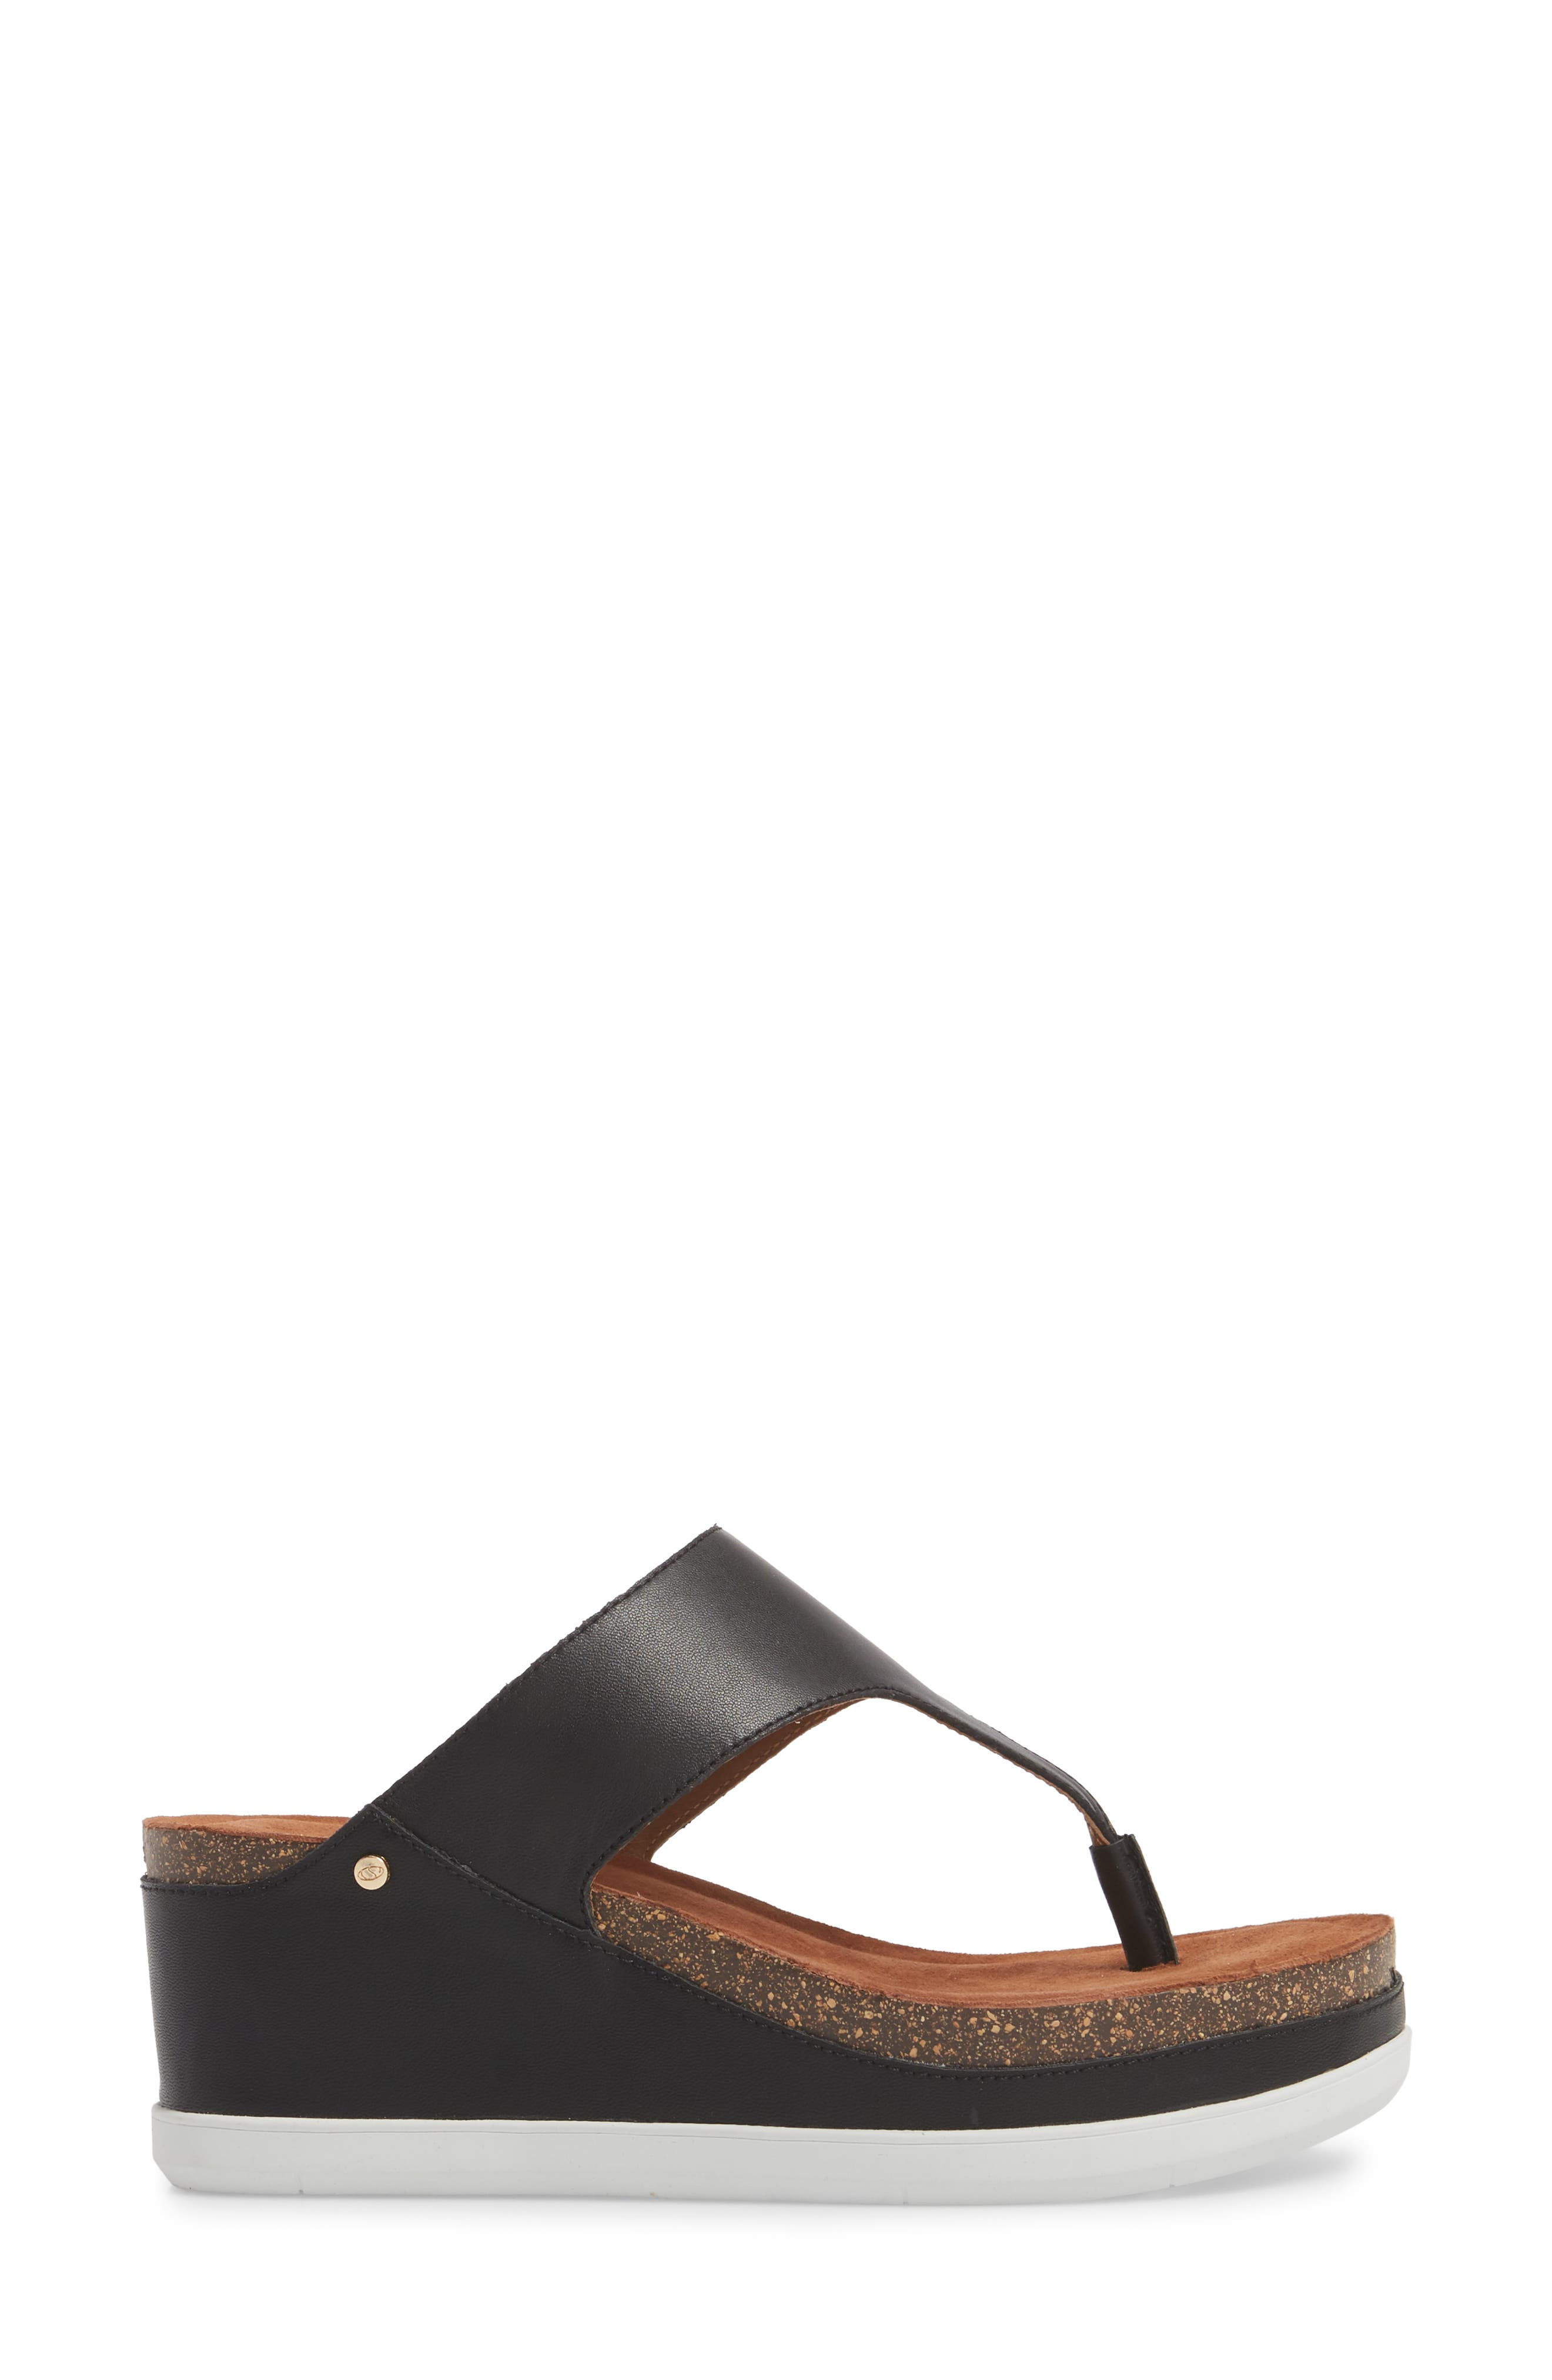 Paige Wedge Mule,                             Alternate thumbnail 3, color,                             BLACK LEATHER